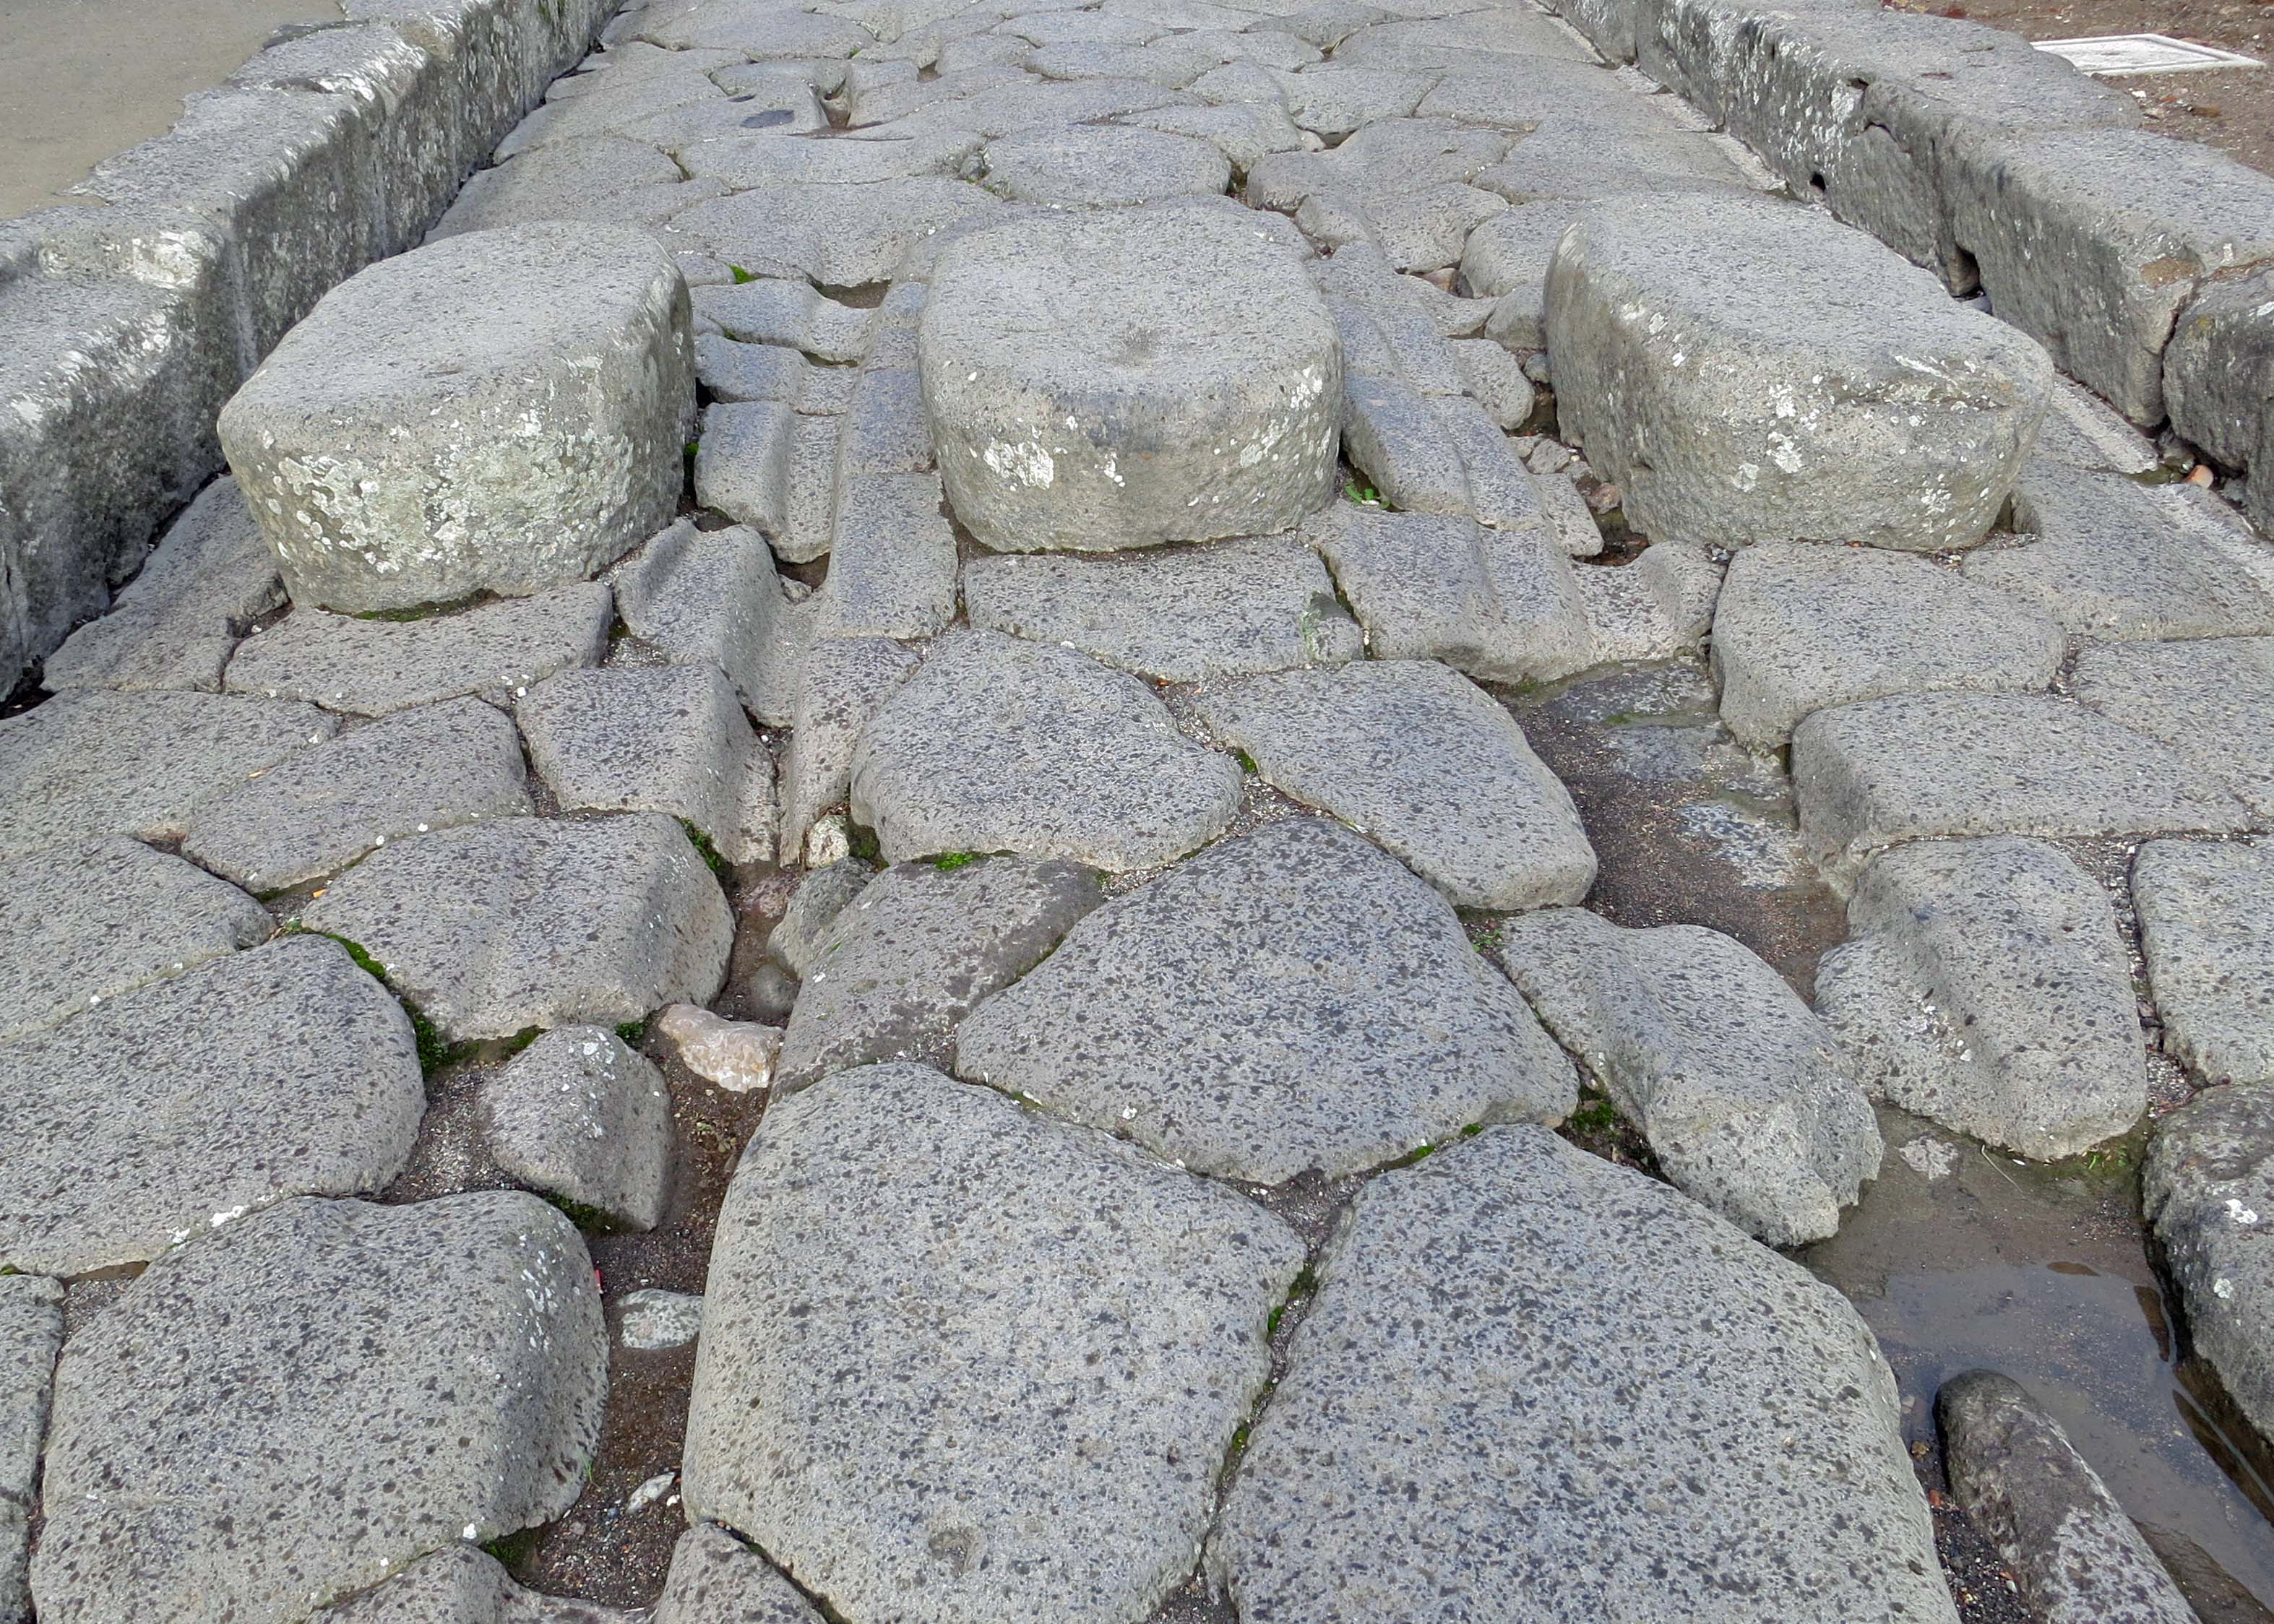 Streets in Pompeii were paved with large granite stones. The deep tracks were made by chariots, all of which had a standardized wheel base. As for the stones on top, you are looking at a crosswalk or stepping stones. These allowed people to avoid horse droppings, and, even more interesting, to cross the roads when the streets were flooded to remove horse droppings and other waste.